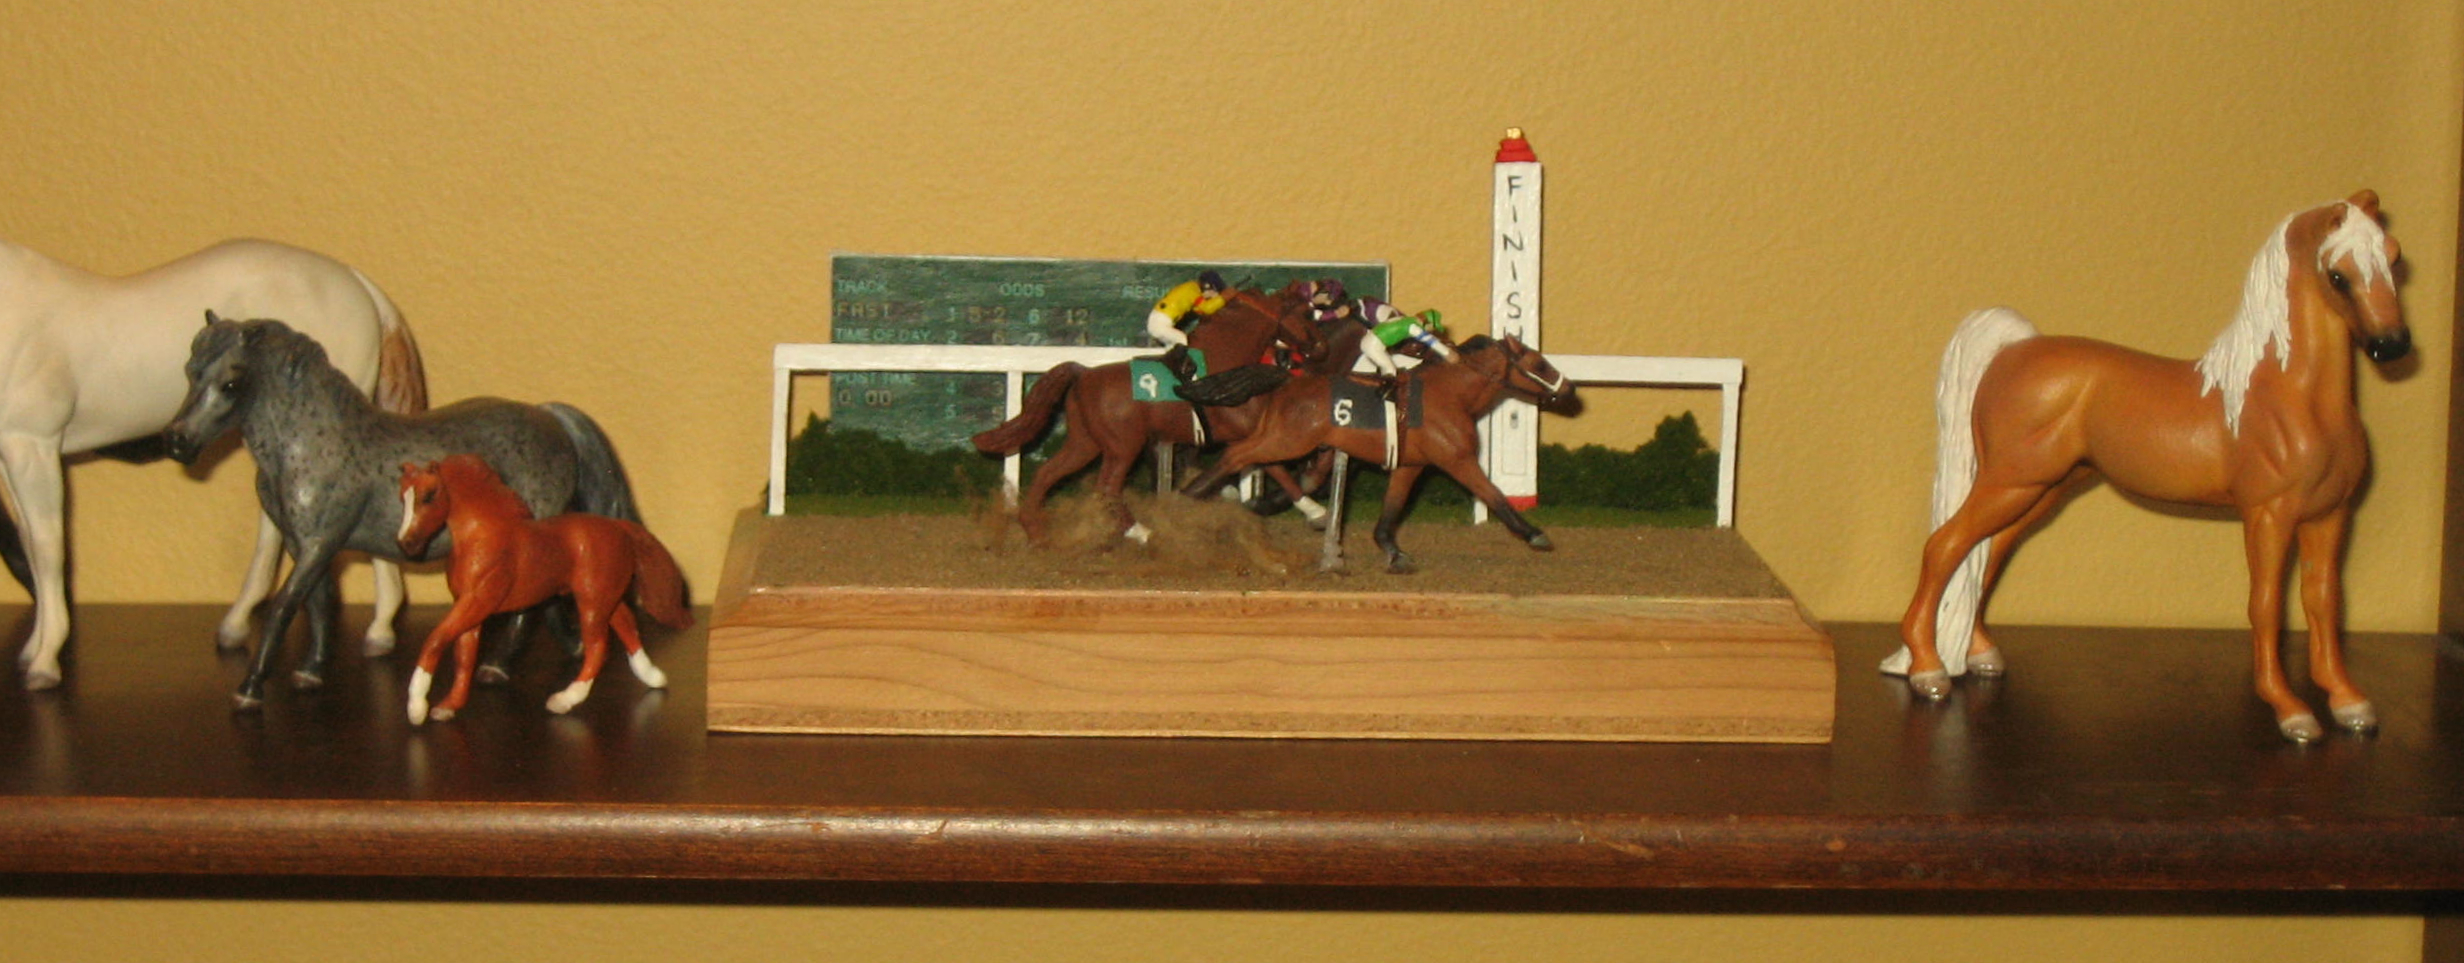 Bay Shoestring Stable